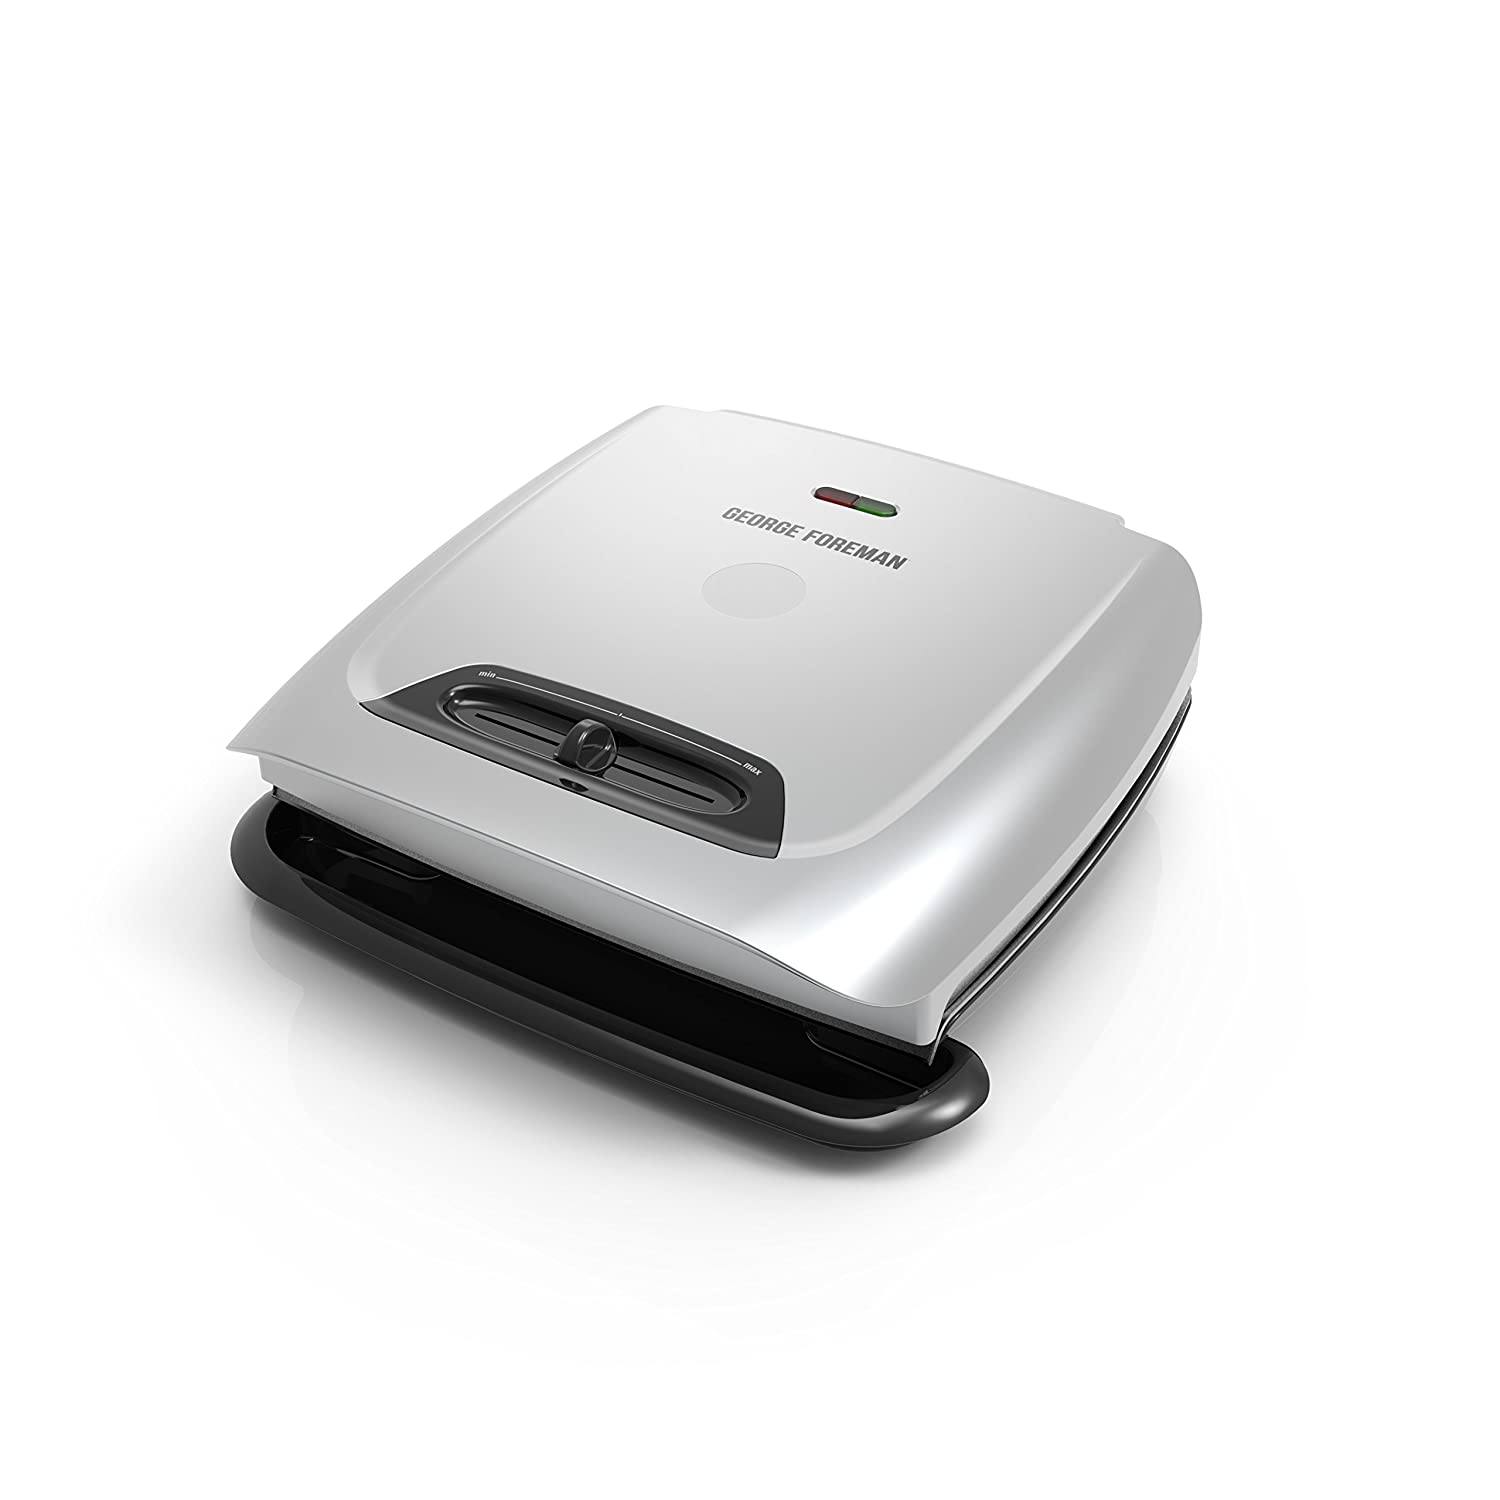 George Foreman GR2121B 8-Serving Classic Plate Grill with Variable Temperature, Black Spectrum Brands